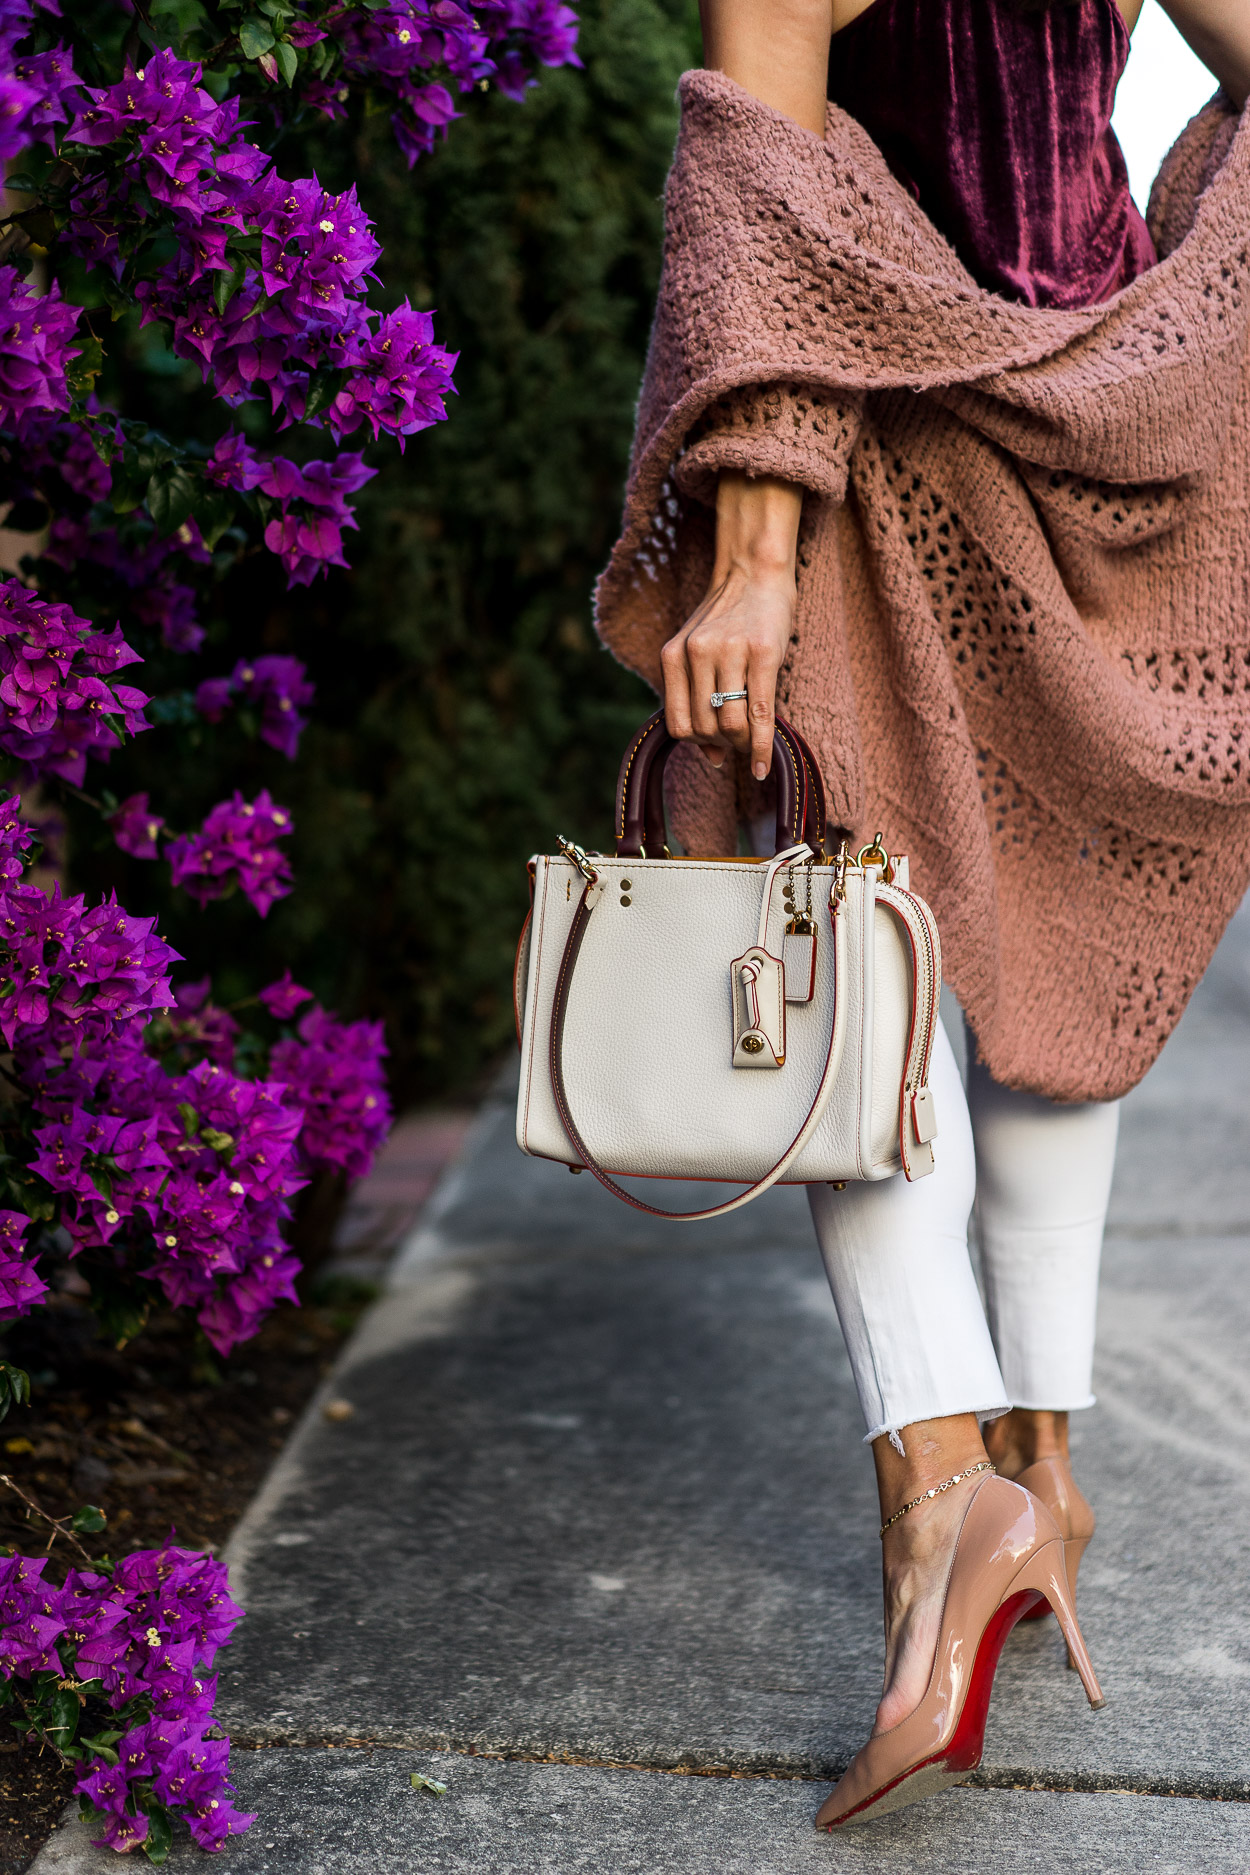 Amanda of AGlamLifestyle blog carries her Coach Rogue bag for Spring